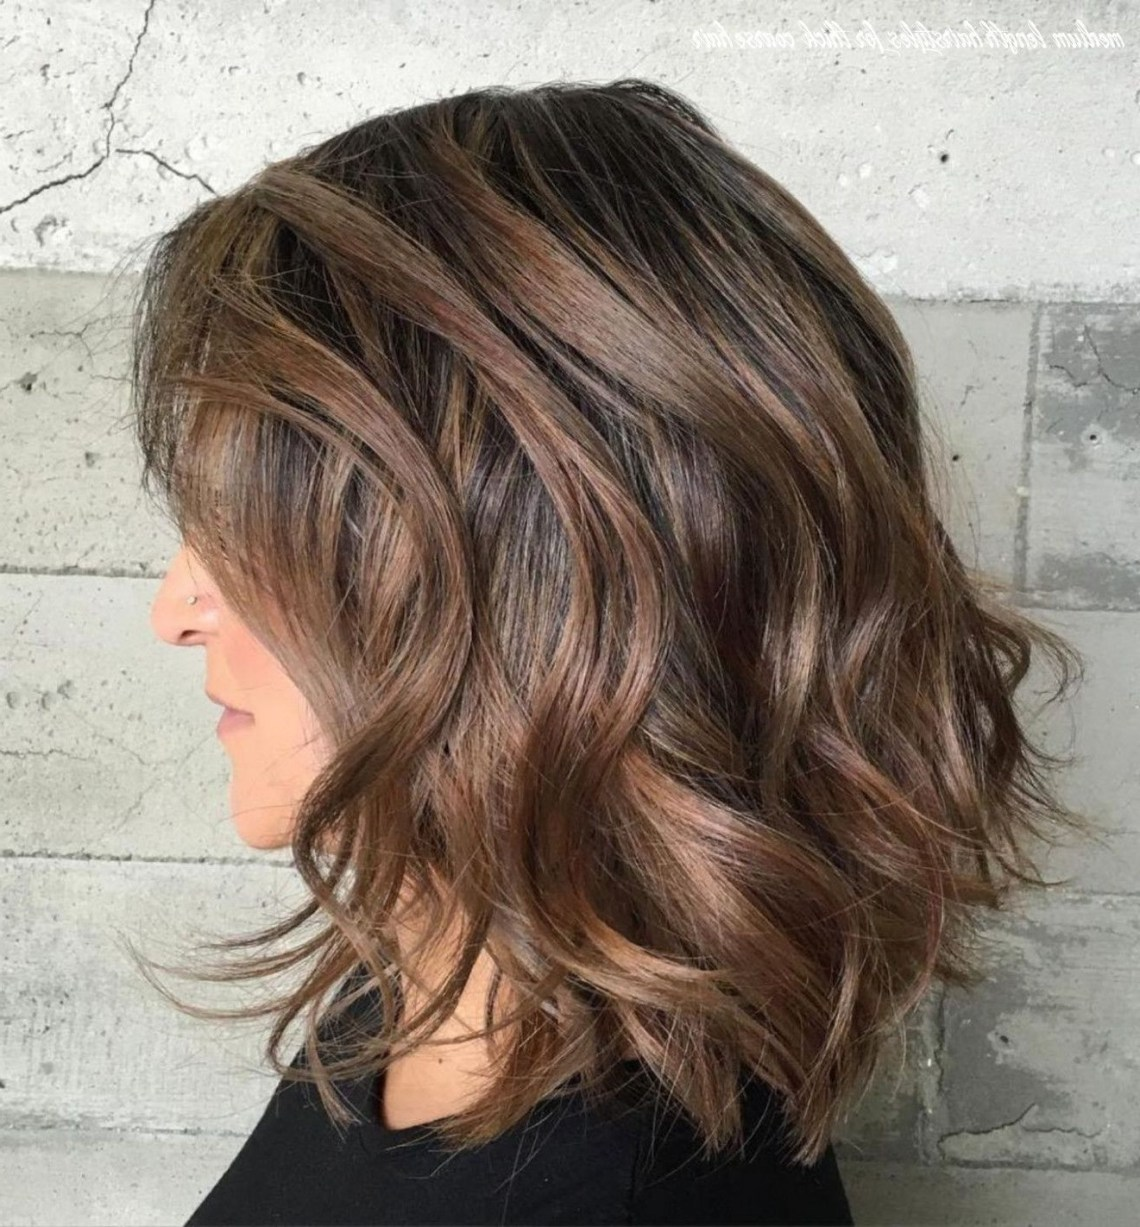 9 Medium Length Hairstyles For Thick Coarse Hair | Haircut 40+ Cute Hairstyles Thick Coarse Hair Medium Length